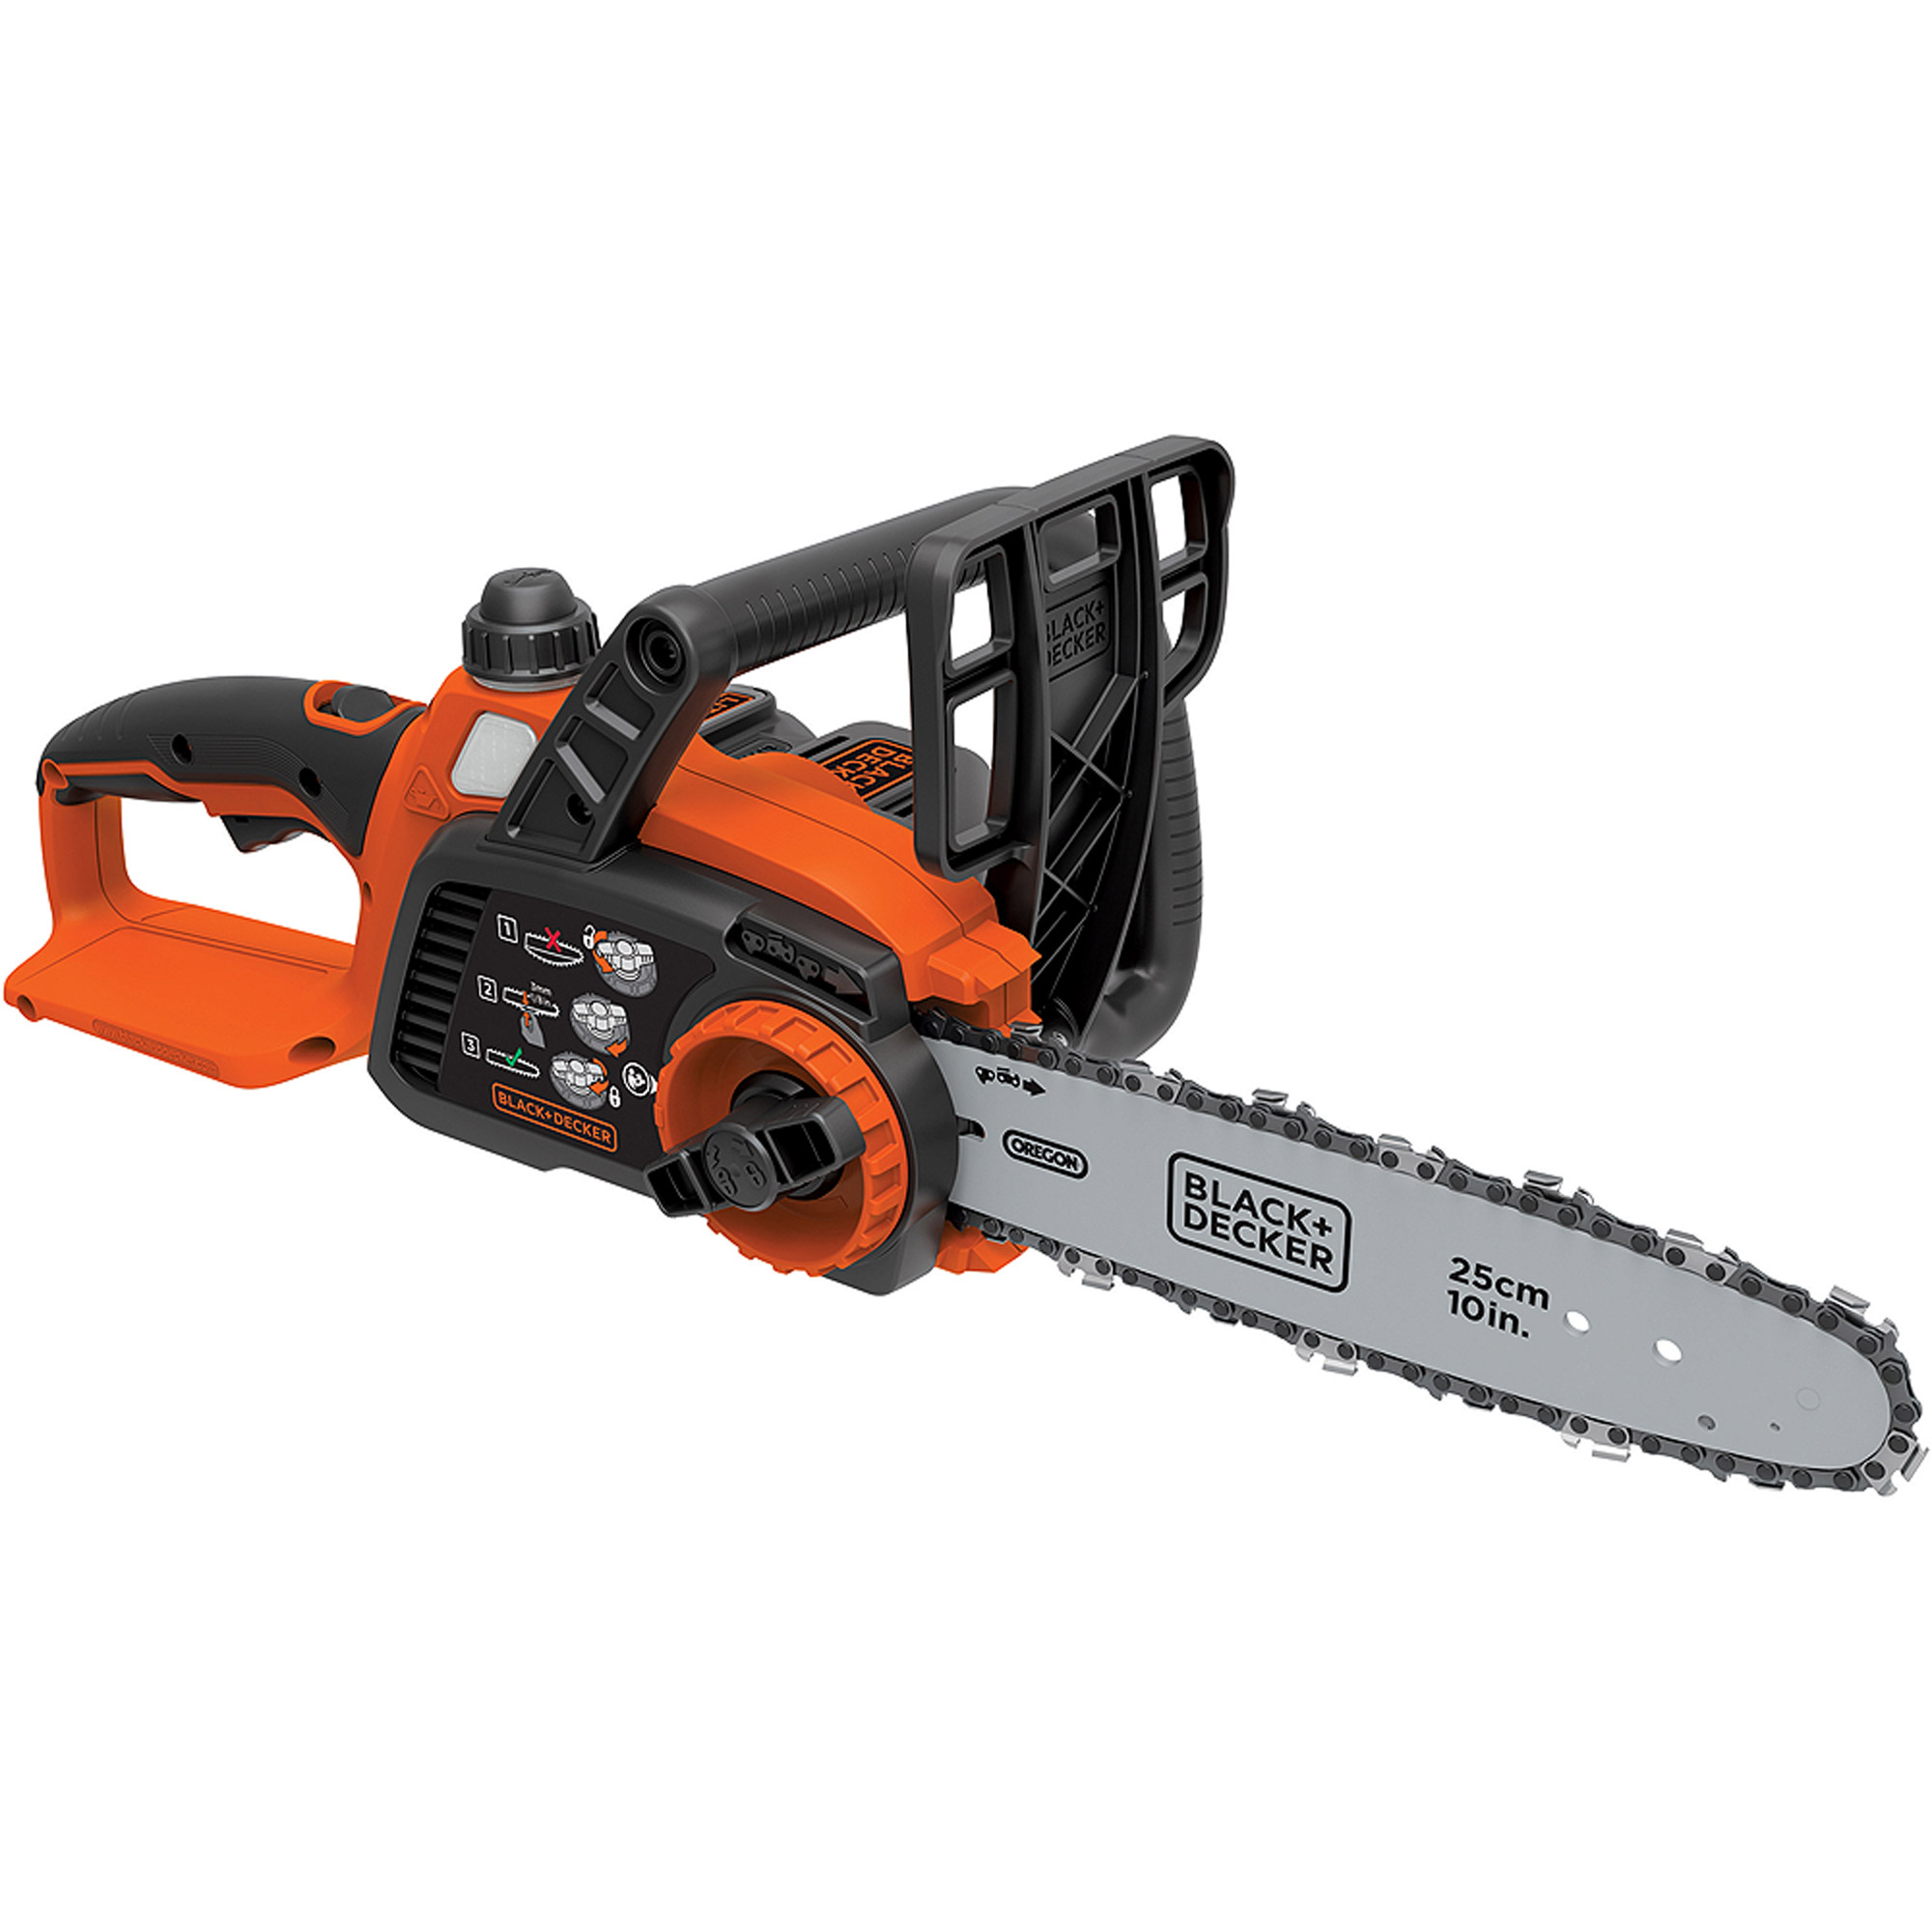 "Black and Decker 20V Lithium Ion 10"" Chainsaw"